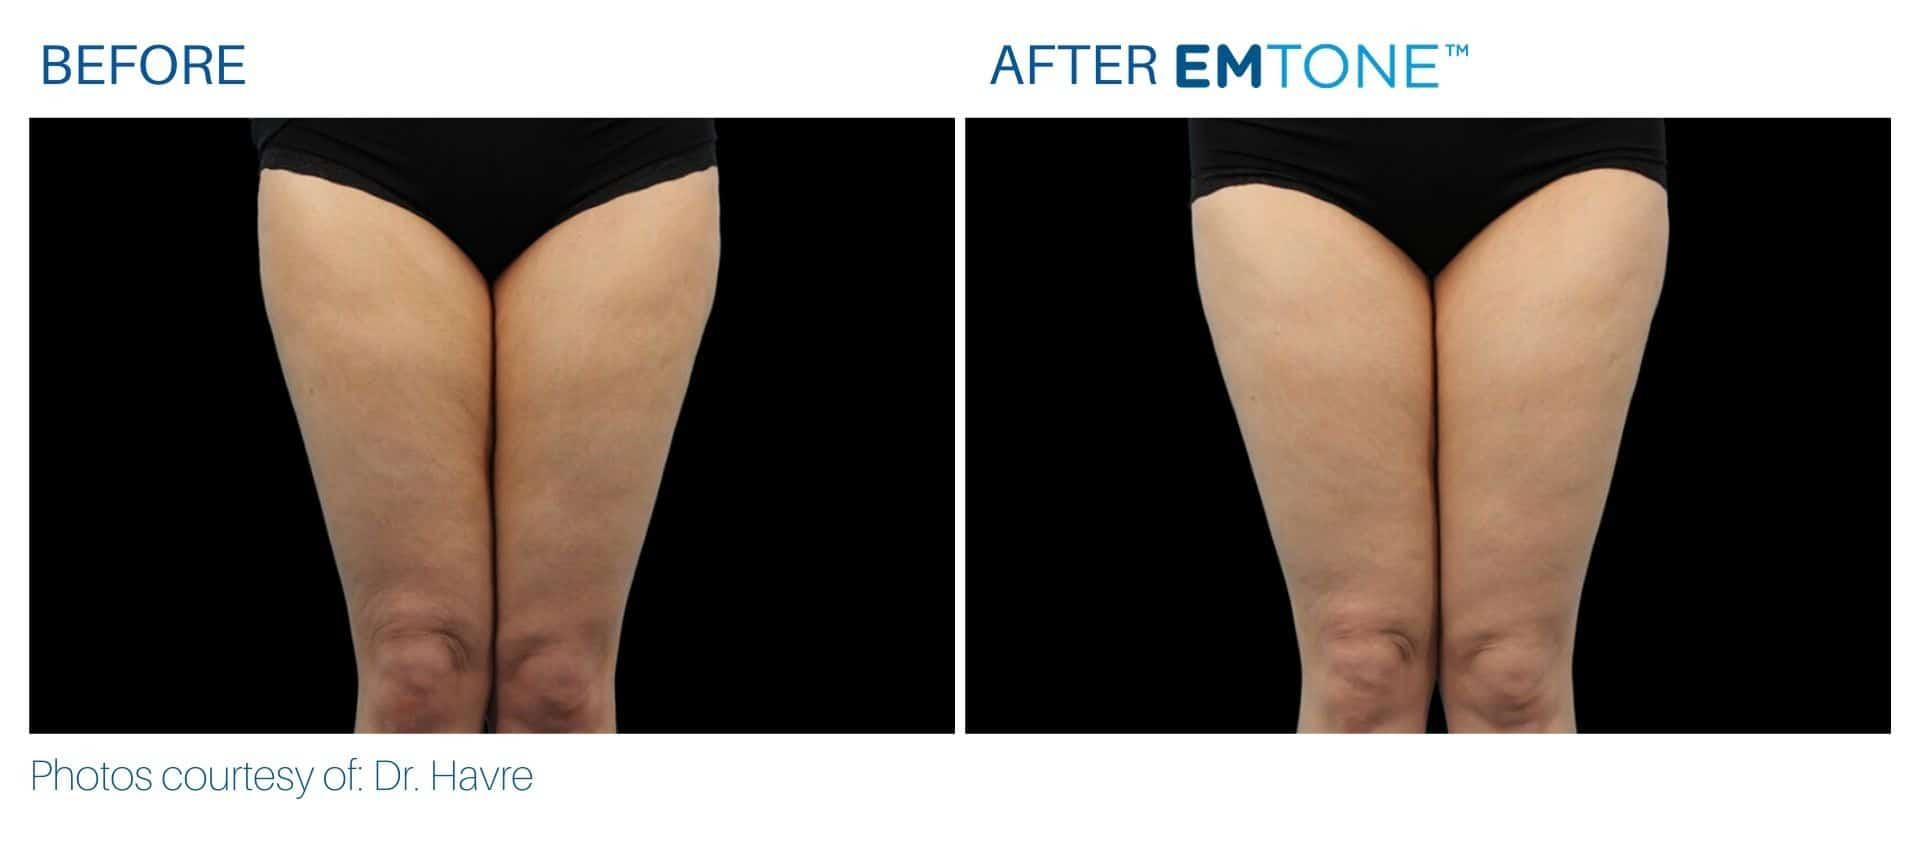 Emtone thighs before and after result Yonkers, NY